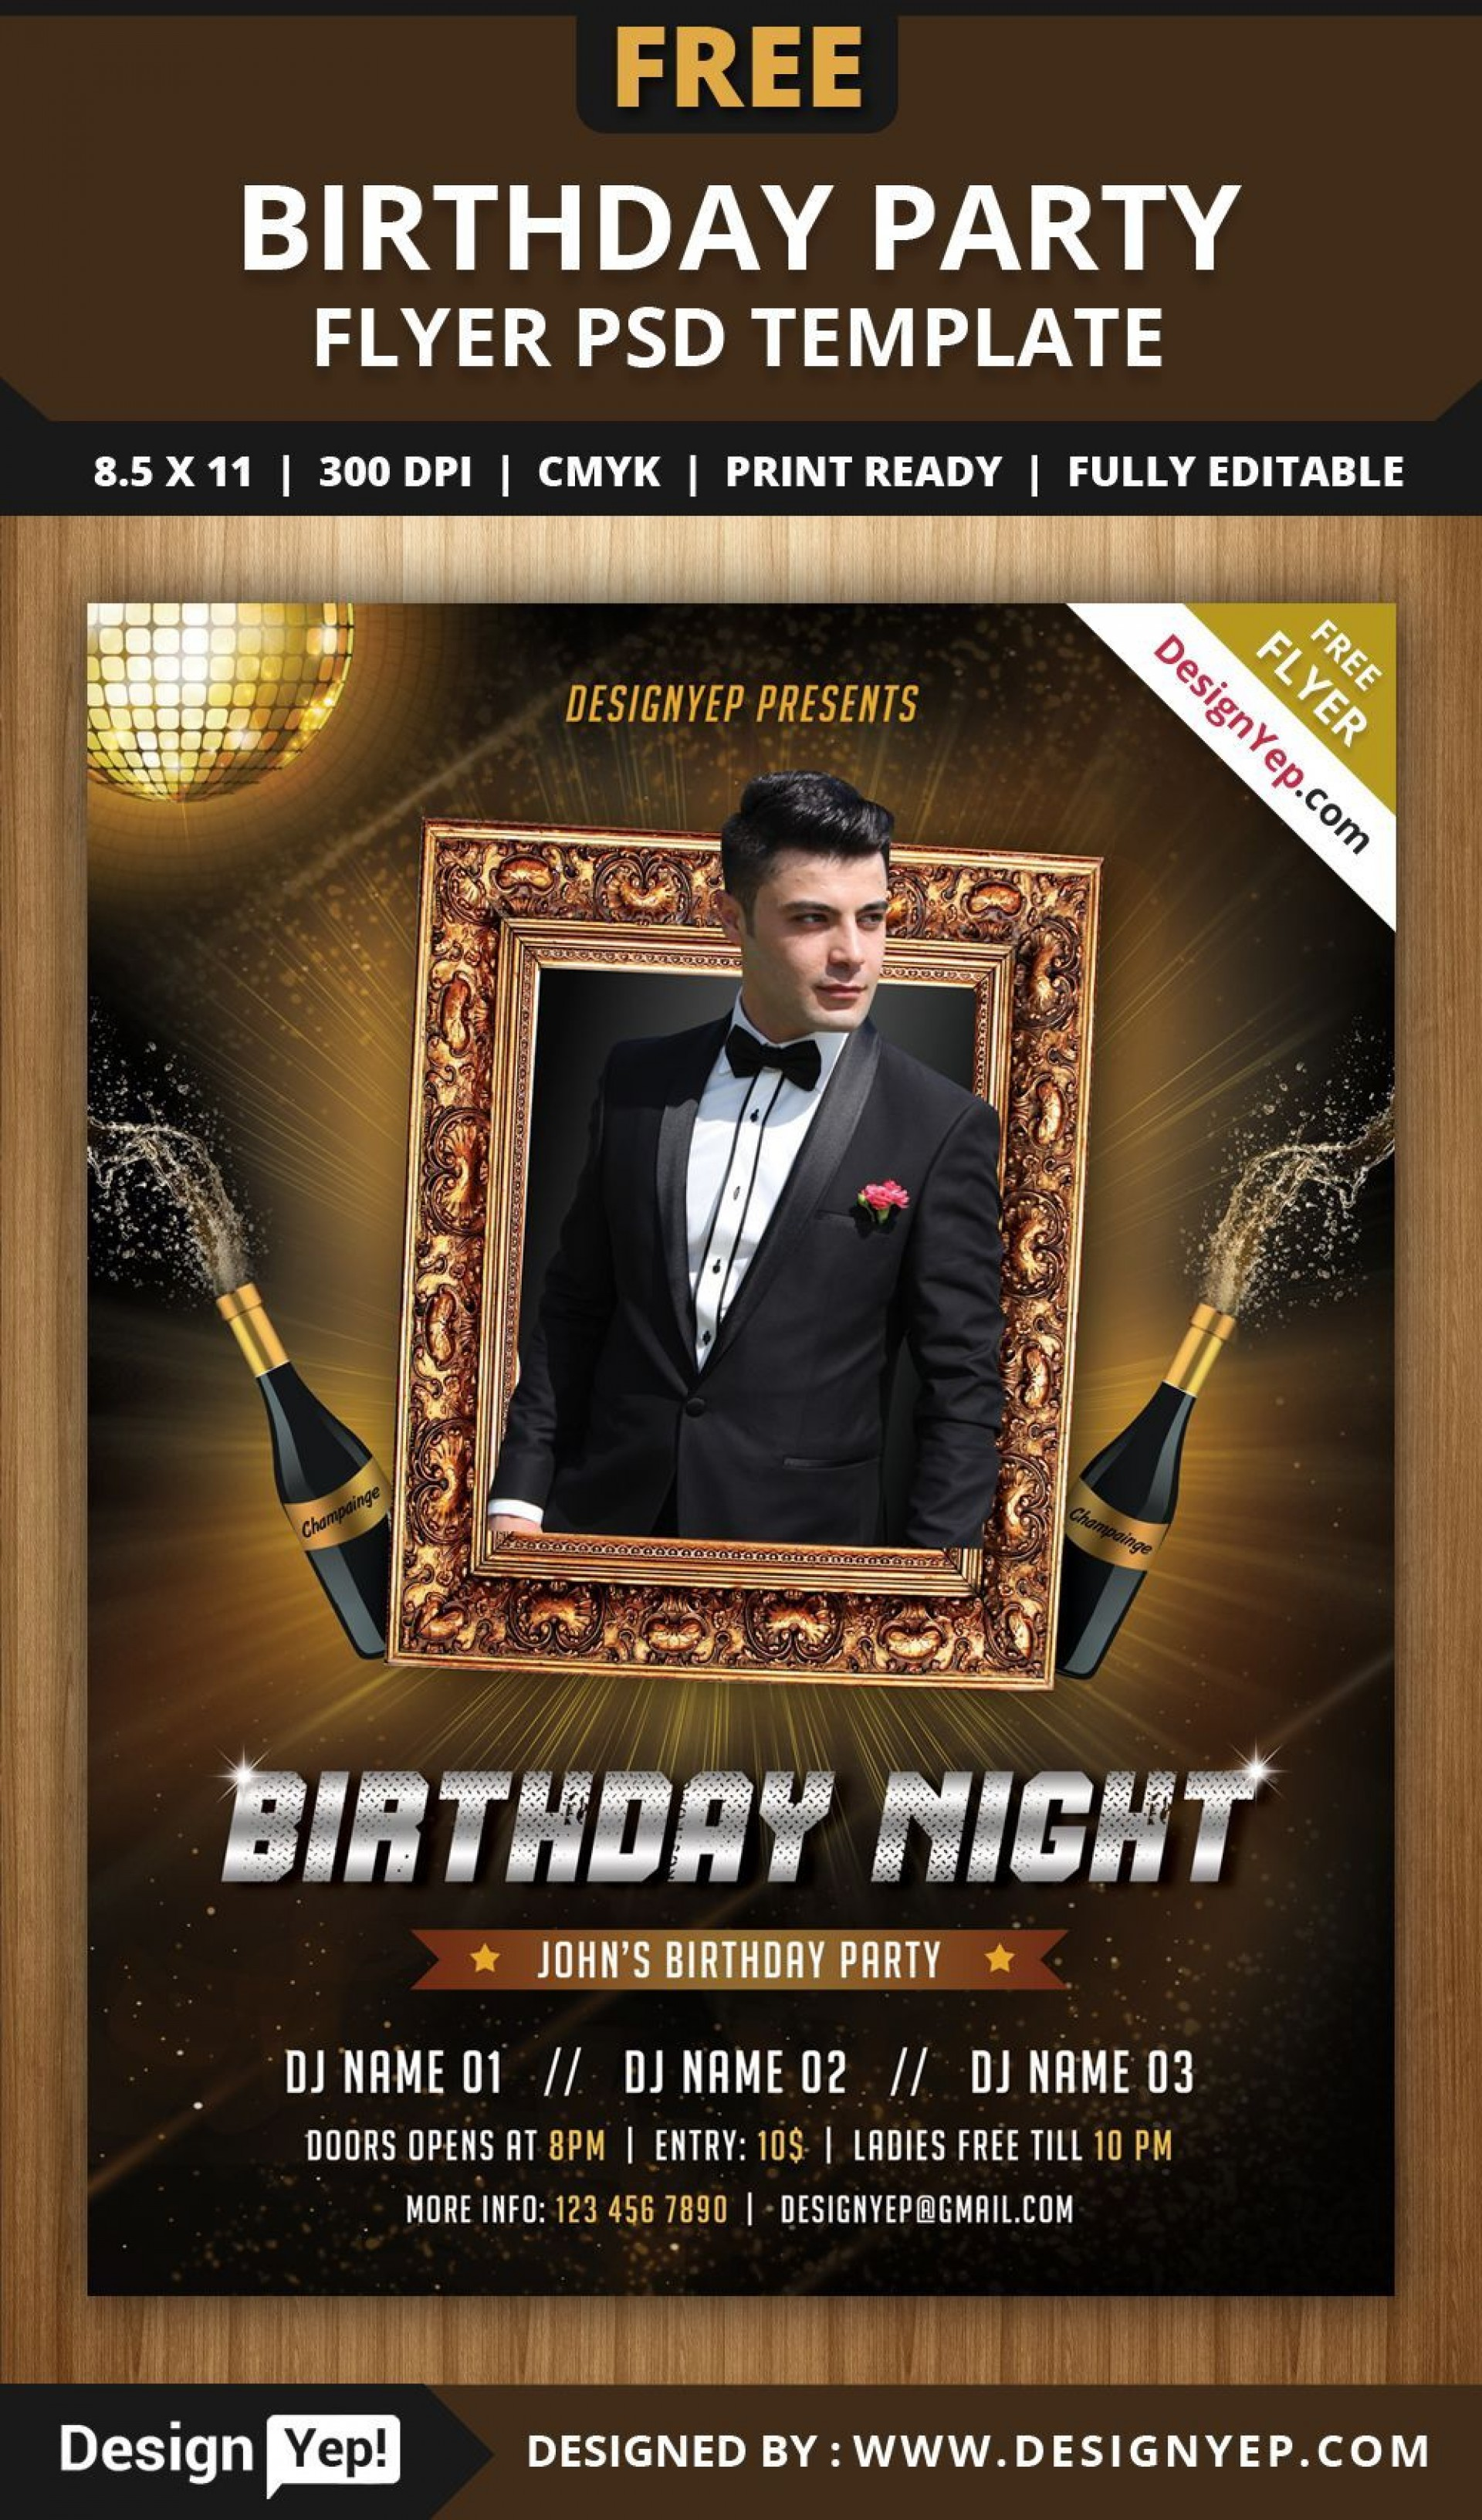 002 Exceptional Birthday Party Invitation Flyer Template Free Download Picture 1920